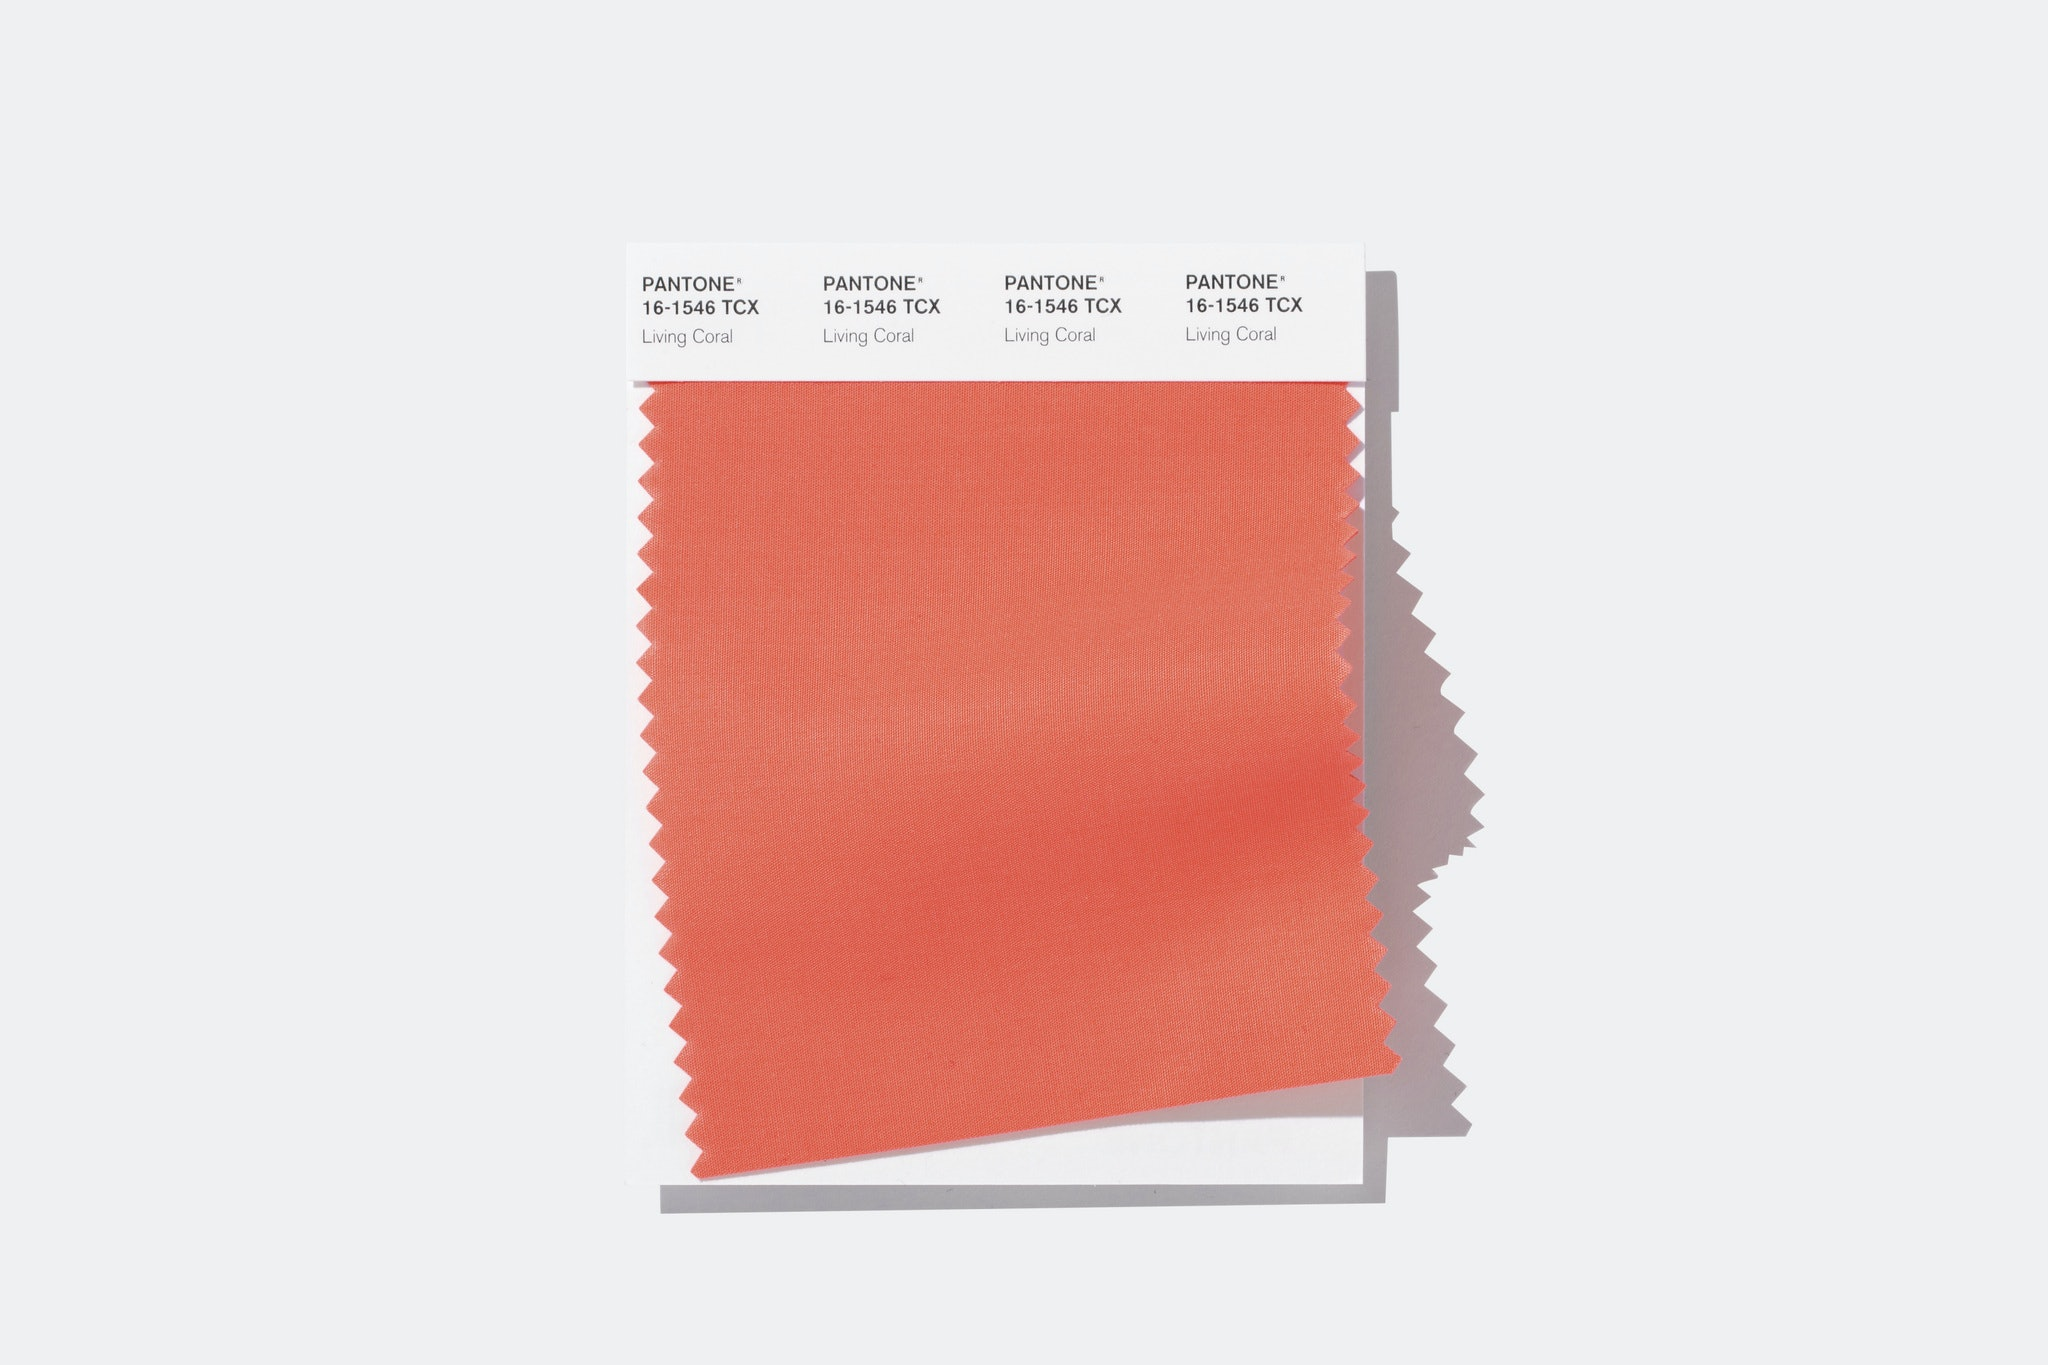 fb8d2bb71750b Pantone's 2019 Color Of The Year Is Living Coral — Here's How To Wear It Now